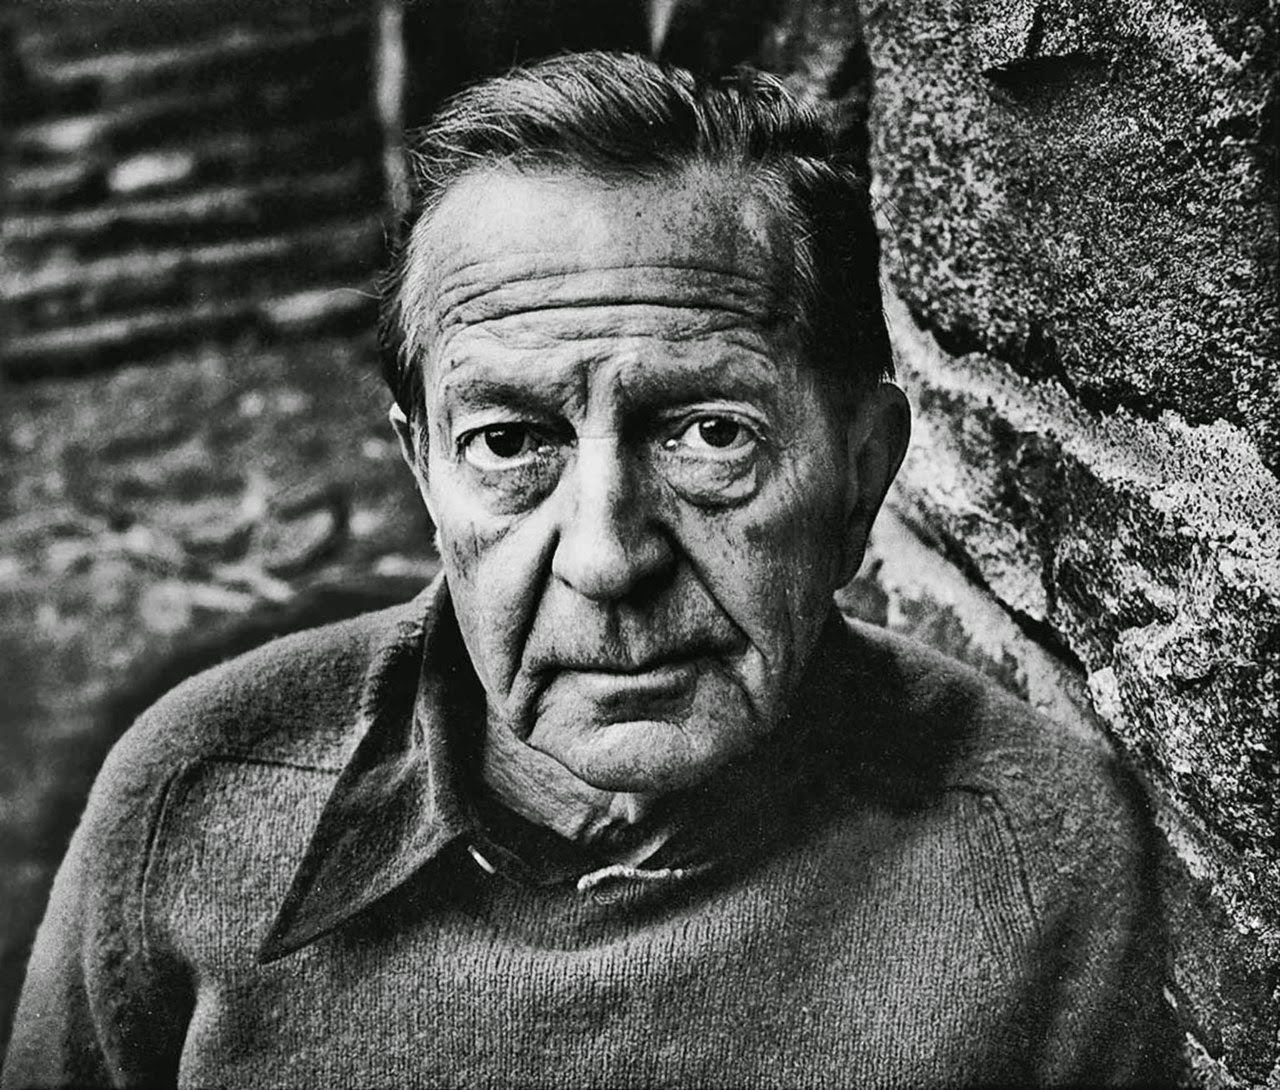 john cheever and his seemingly average Written by blake bailey, audiobook narrated by malcolm hillgartner sign-in to download and listen to this audiobook today first time visiting audible get this book free when you sign up for a 30-day trial.